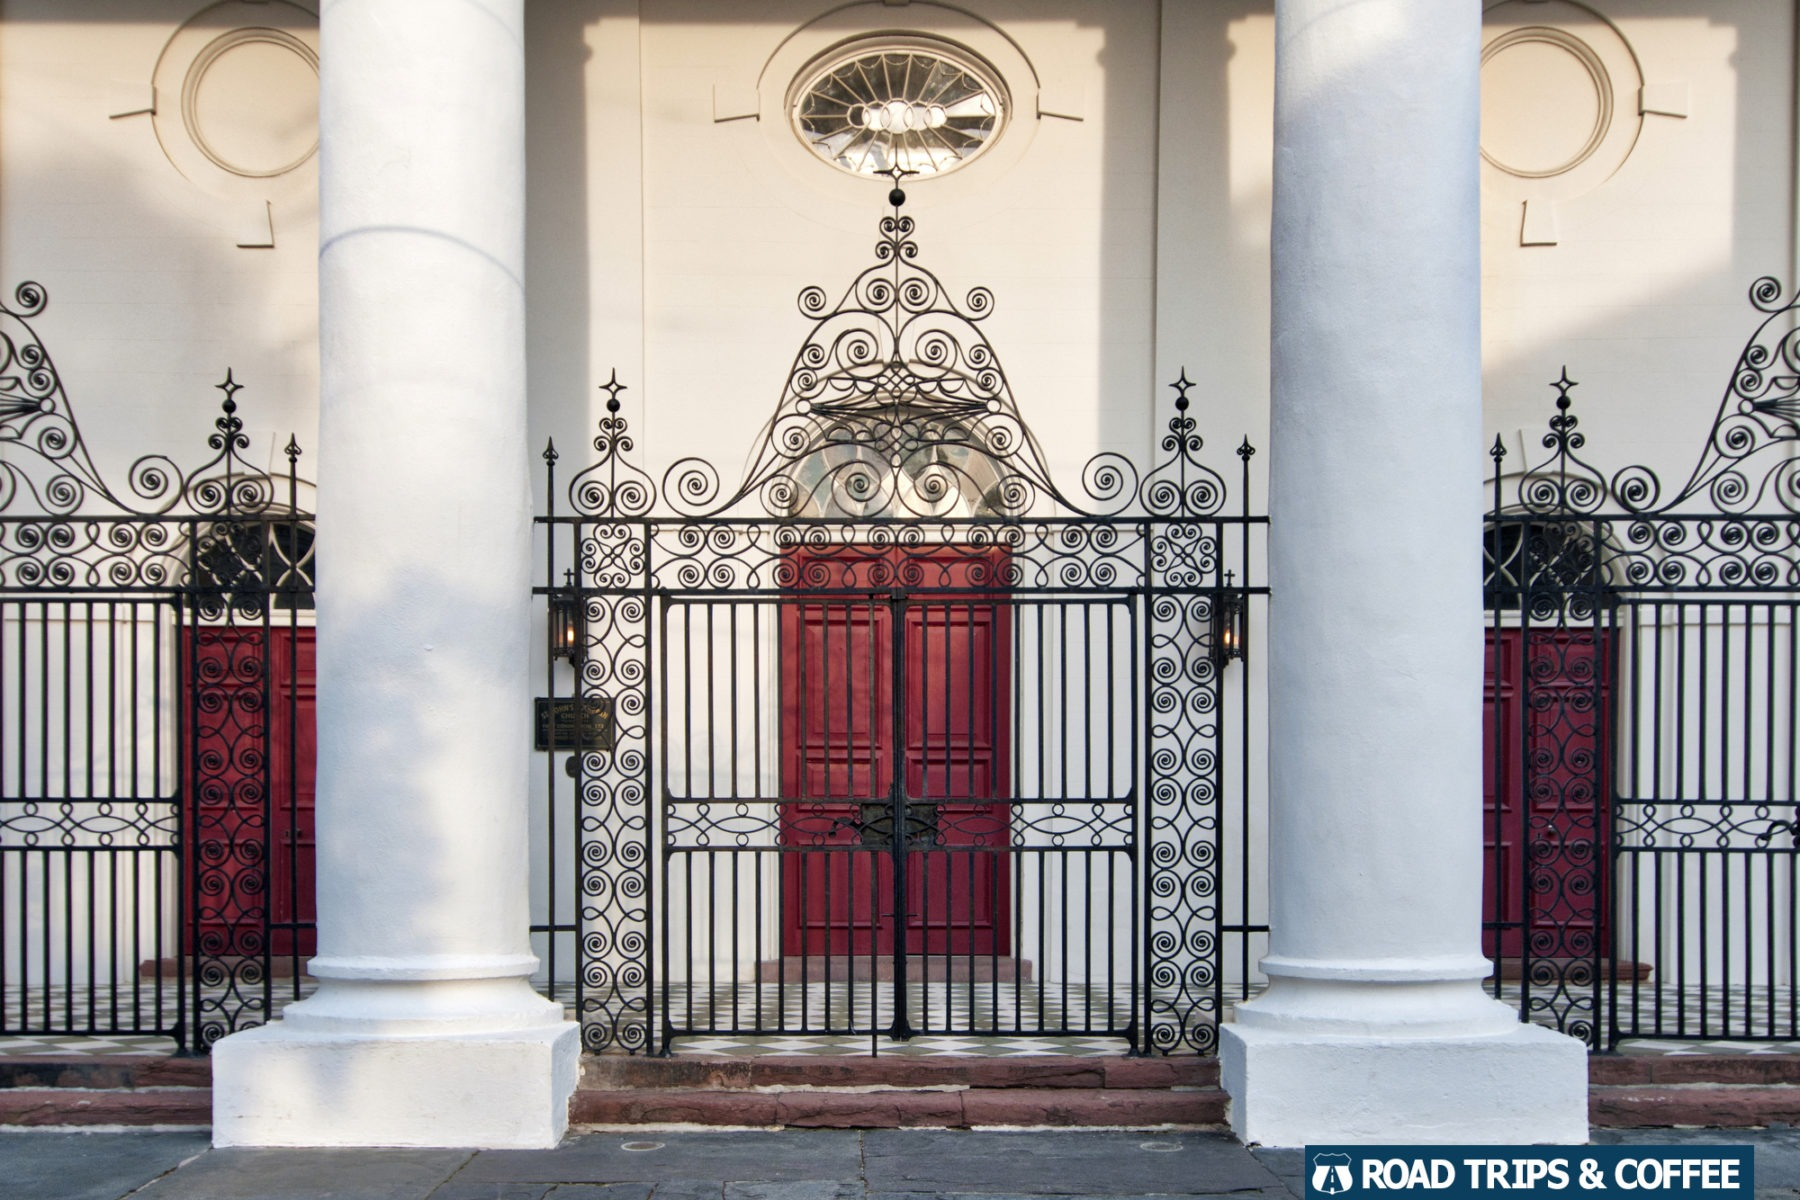 Vibrant red doors behind a wrought iron fence at St. John's Lutheran Church in Charleston, South Carolina